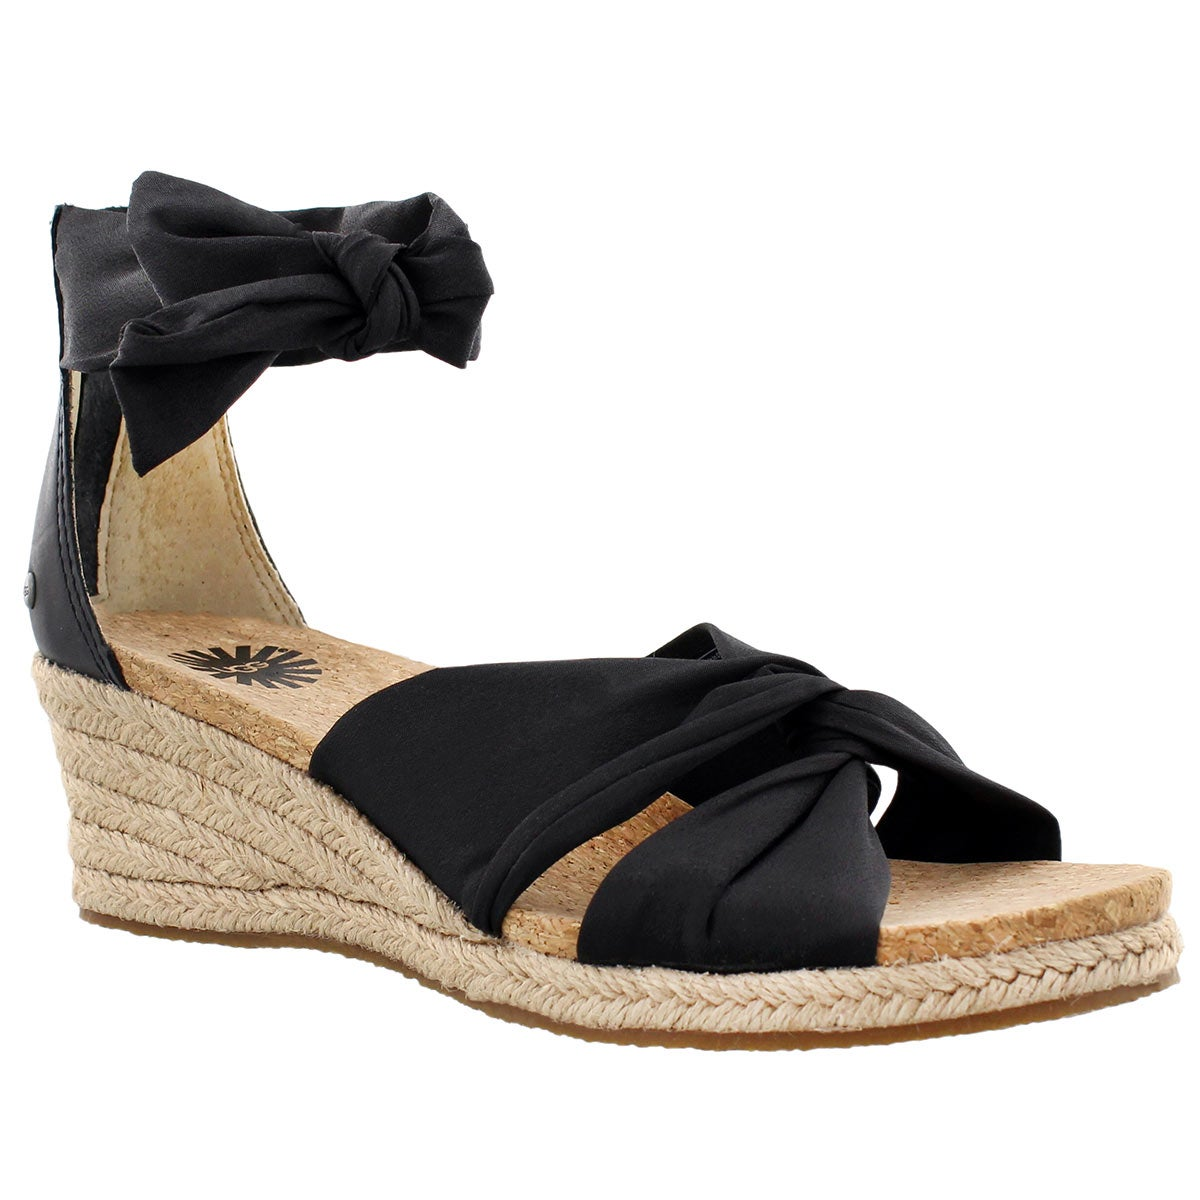 Lds Starla blk fabric wedge sandal